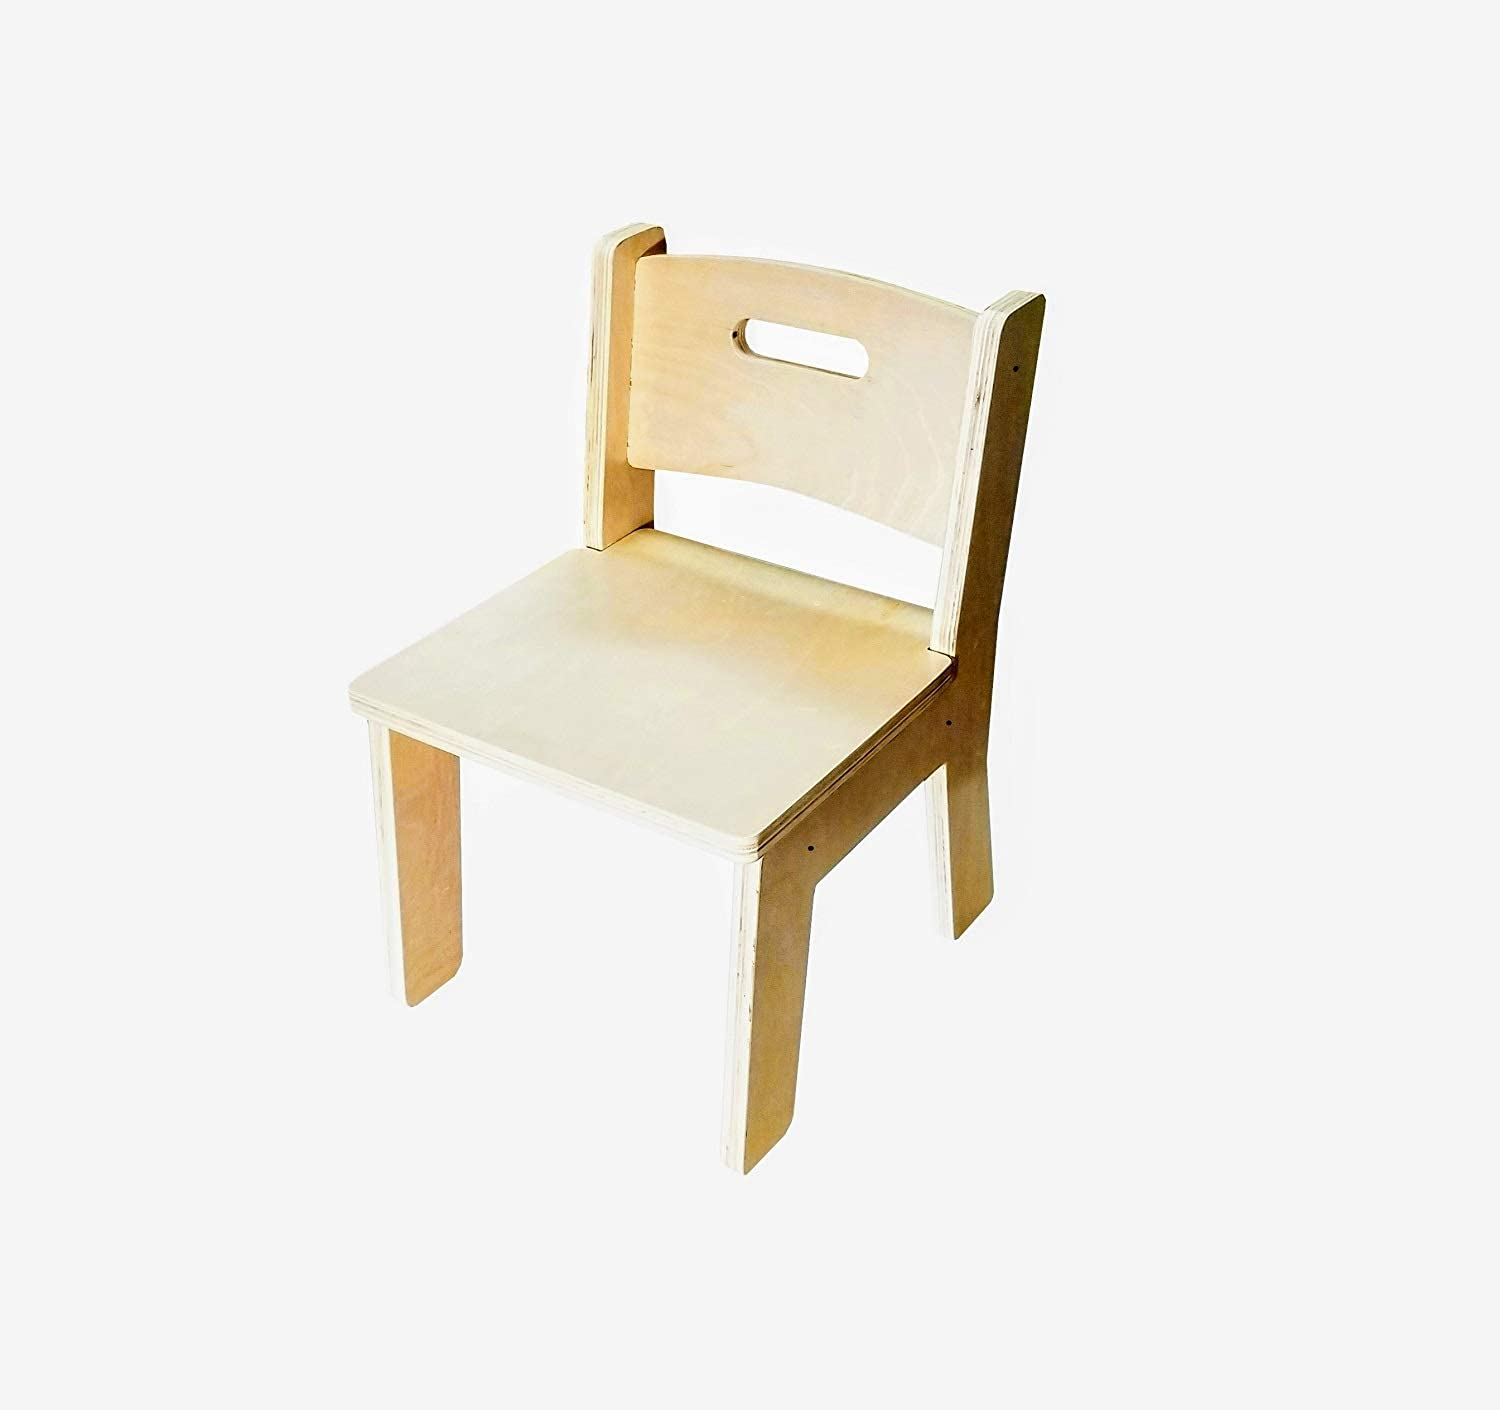 RoyHammer Kids Chair (A) - for School, Play Room & Library